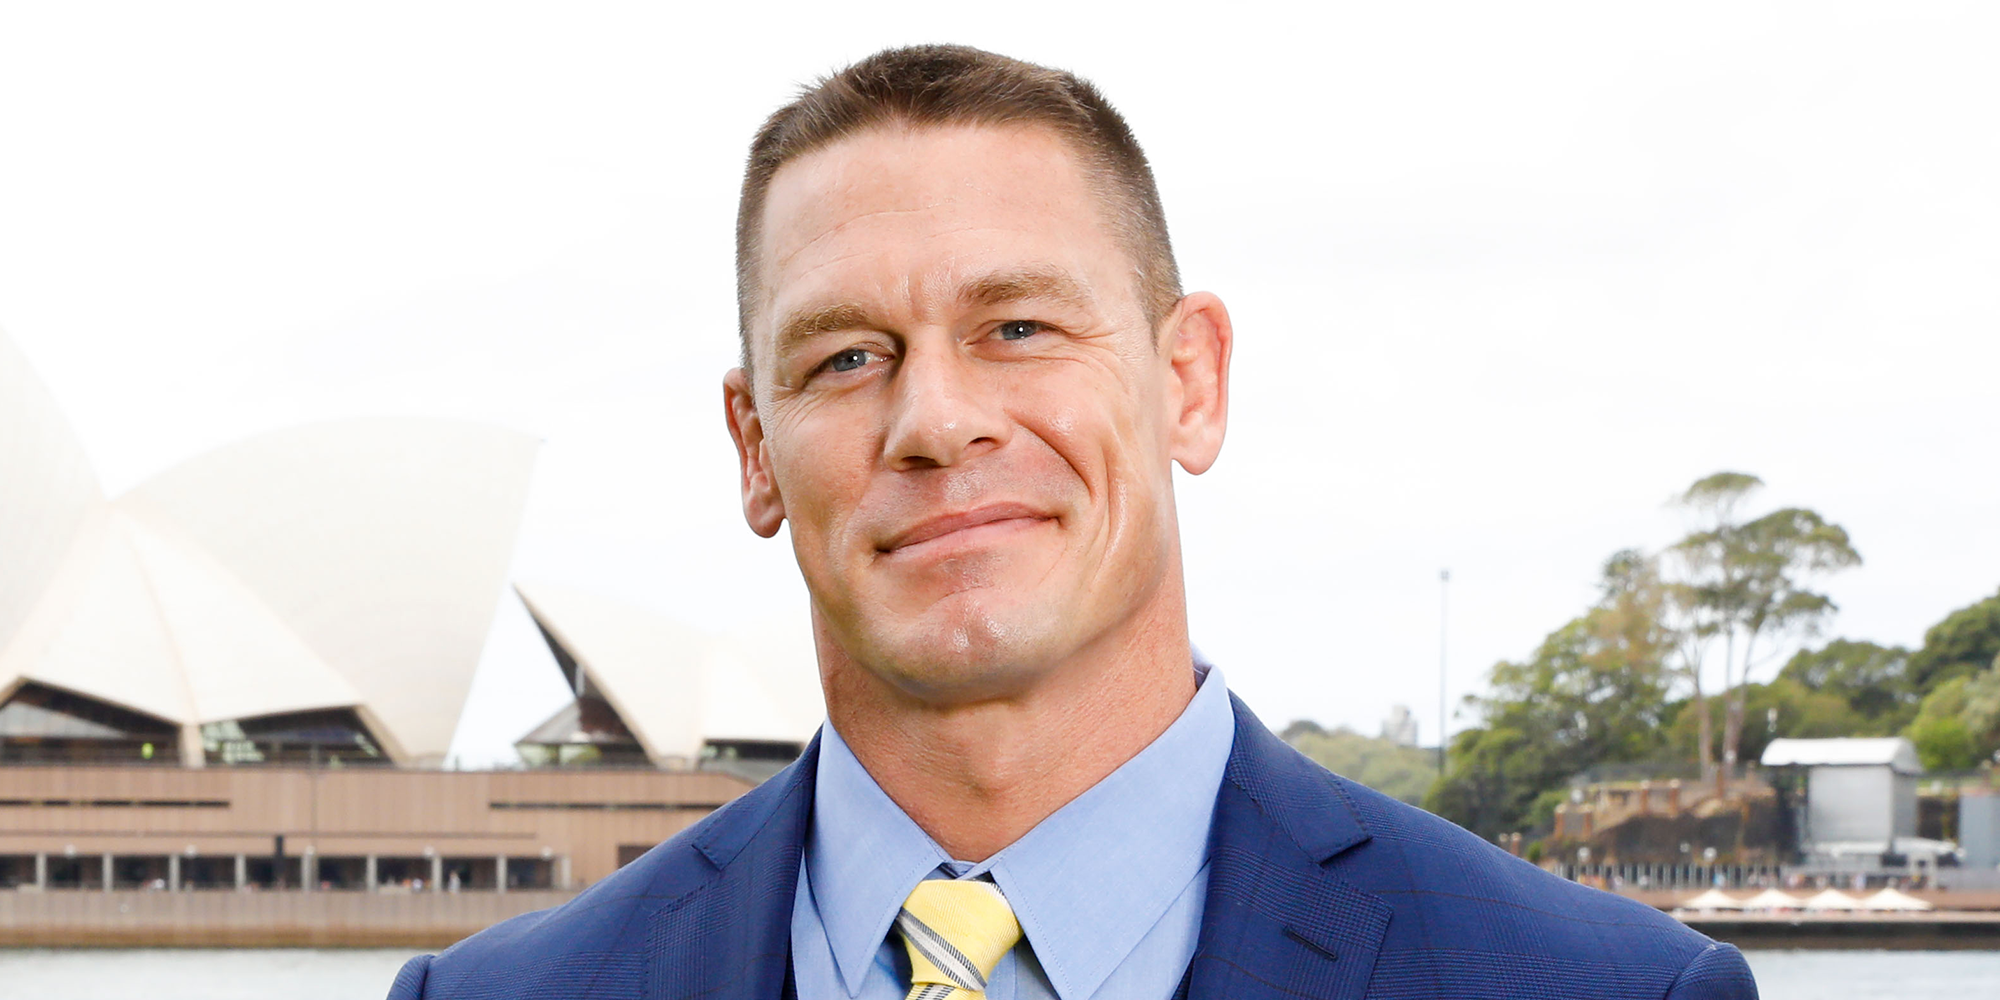 What Is John Cena\'s Net Worth? - How Much is John Cena Worth Now?